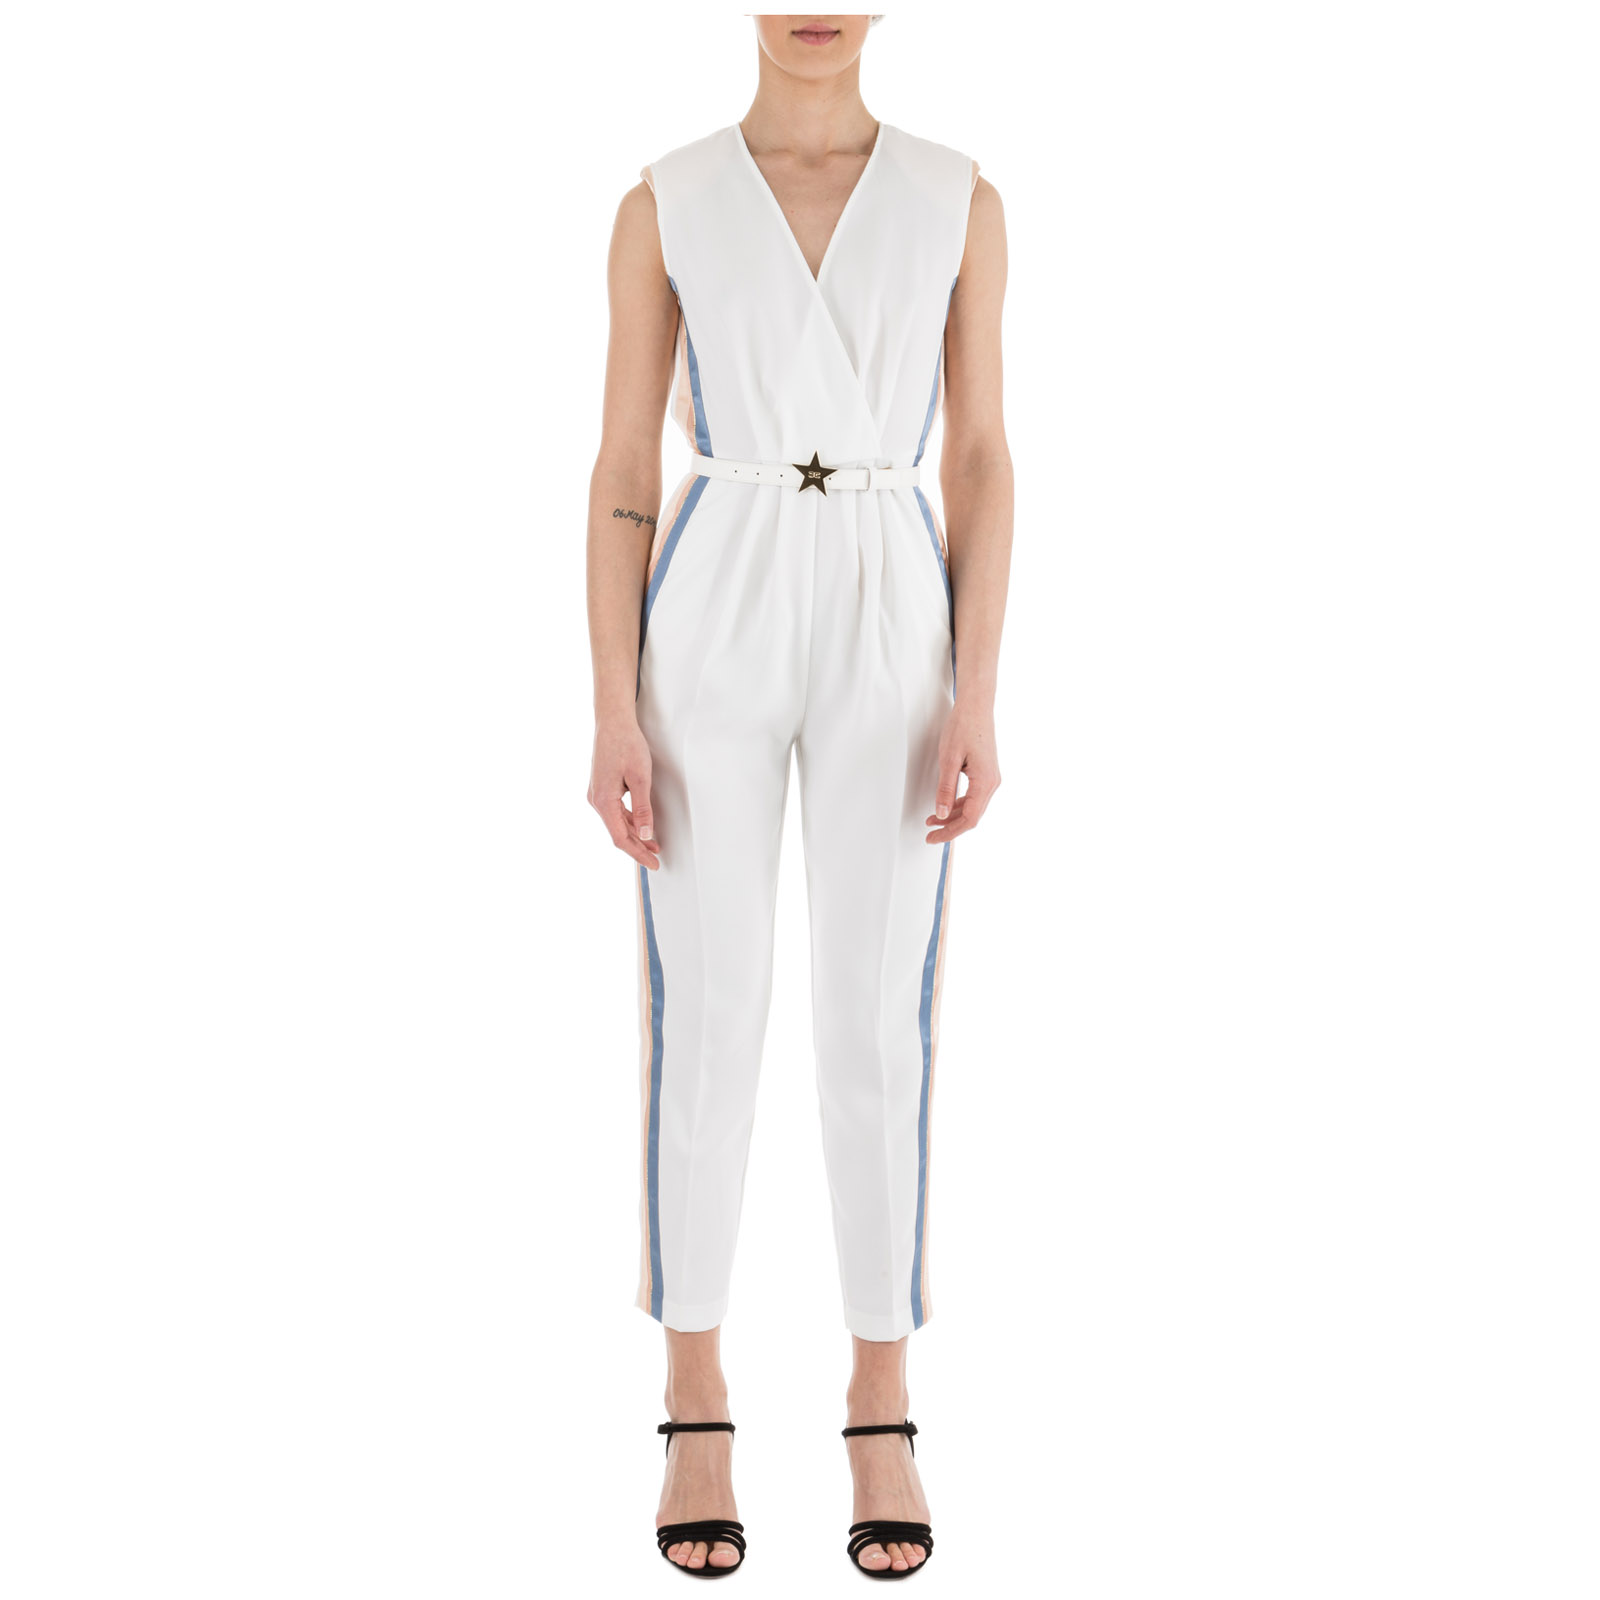 competitive price d19fd 6eb27 Women's Jumpsuit Fashion in White